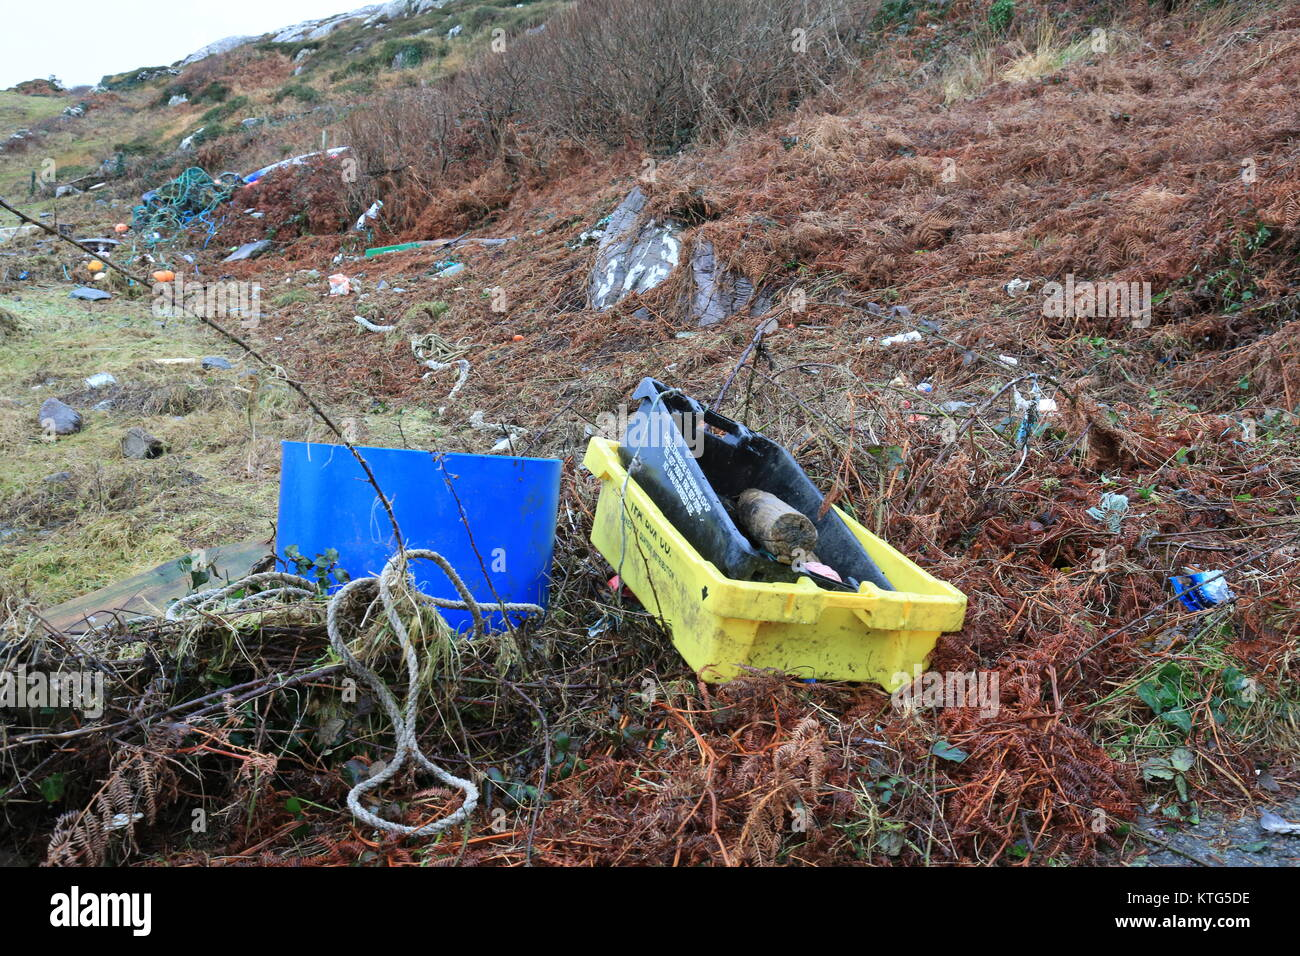 Examples of pollution in the Irish landscape - Stock Image